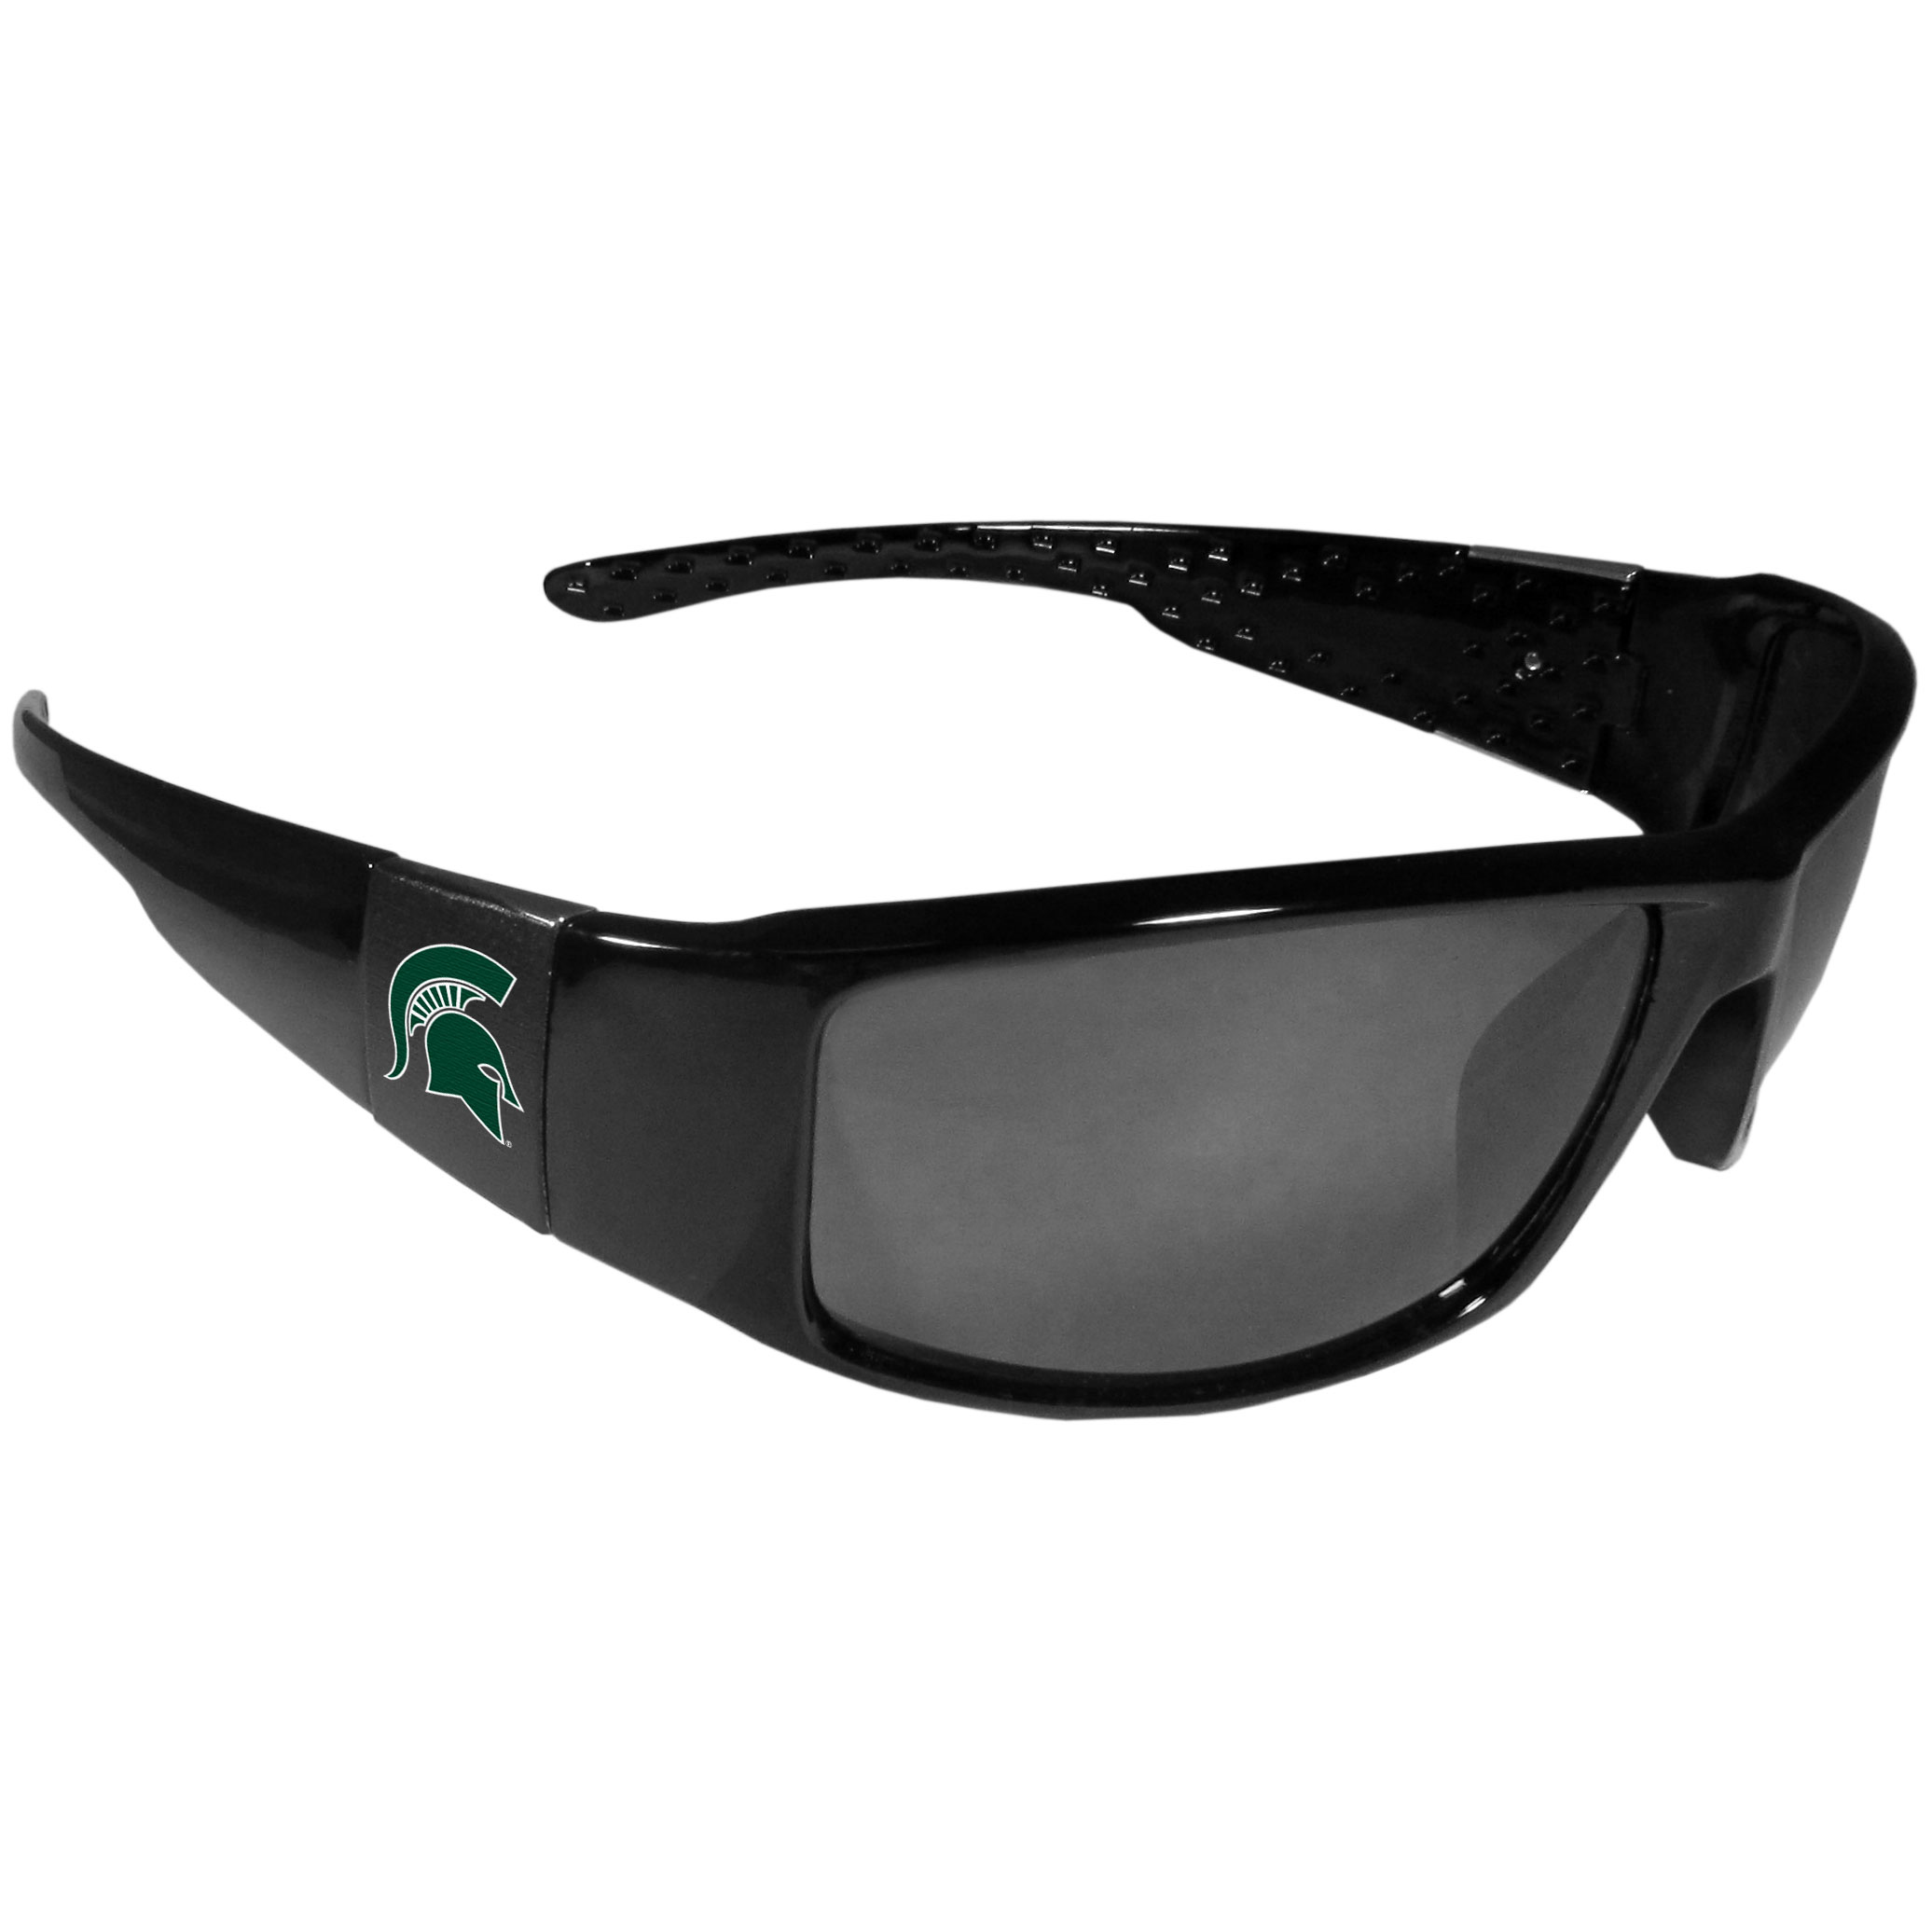 Michigan St. Spartans Black Wrap Sunglasses - These designer inspired frames have a sleek look in all black with  Michigan St. Spartans shields on each arm with a printed logo. The shades are perfect for any outdoor activity like; golfing, driving, hiking, fishing or cheering on the team at a tailgating event or at a home game day BBQ with a lens rating of 100% UVA/UVB for maximum UV protection. The high-quality frames are as durable as they are fashionable and with their classic look they are the perfect fan accessory that can be worn everyday for every occasion.